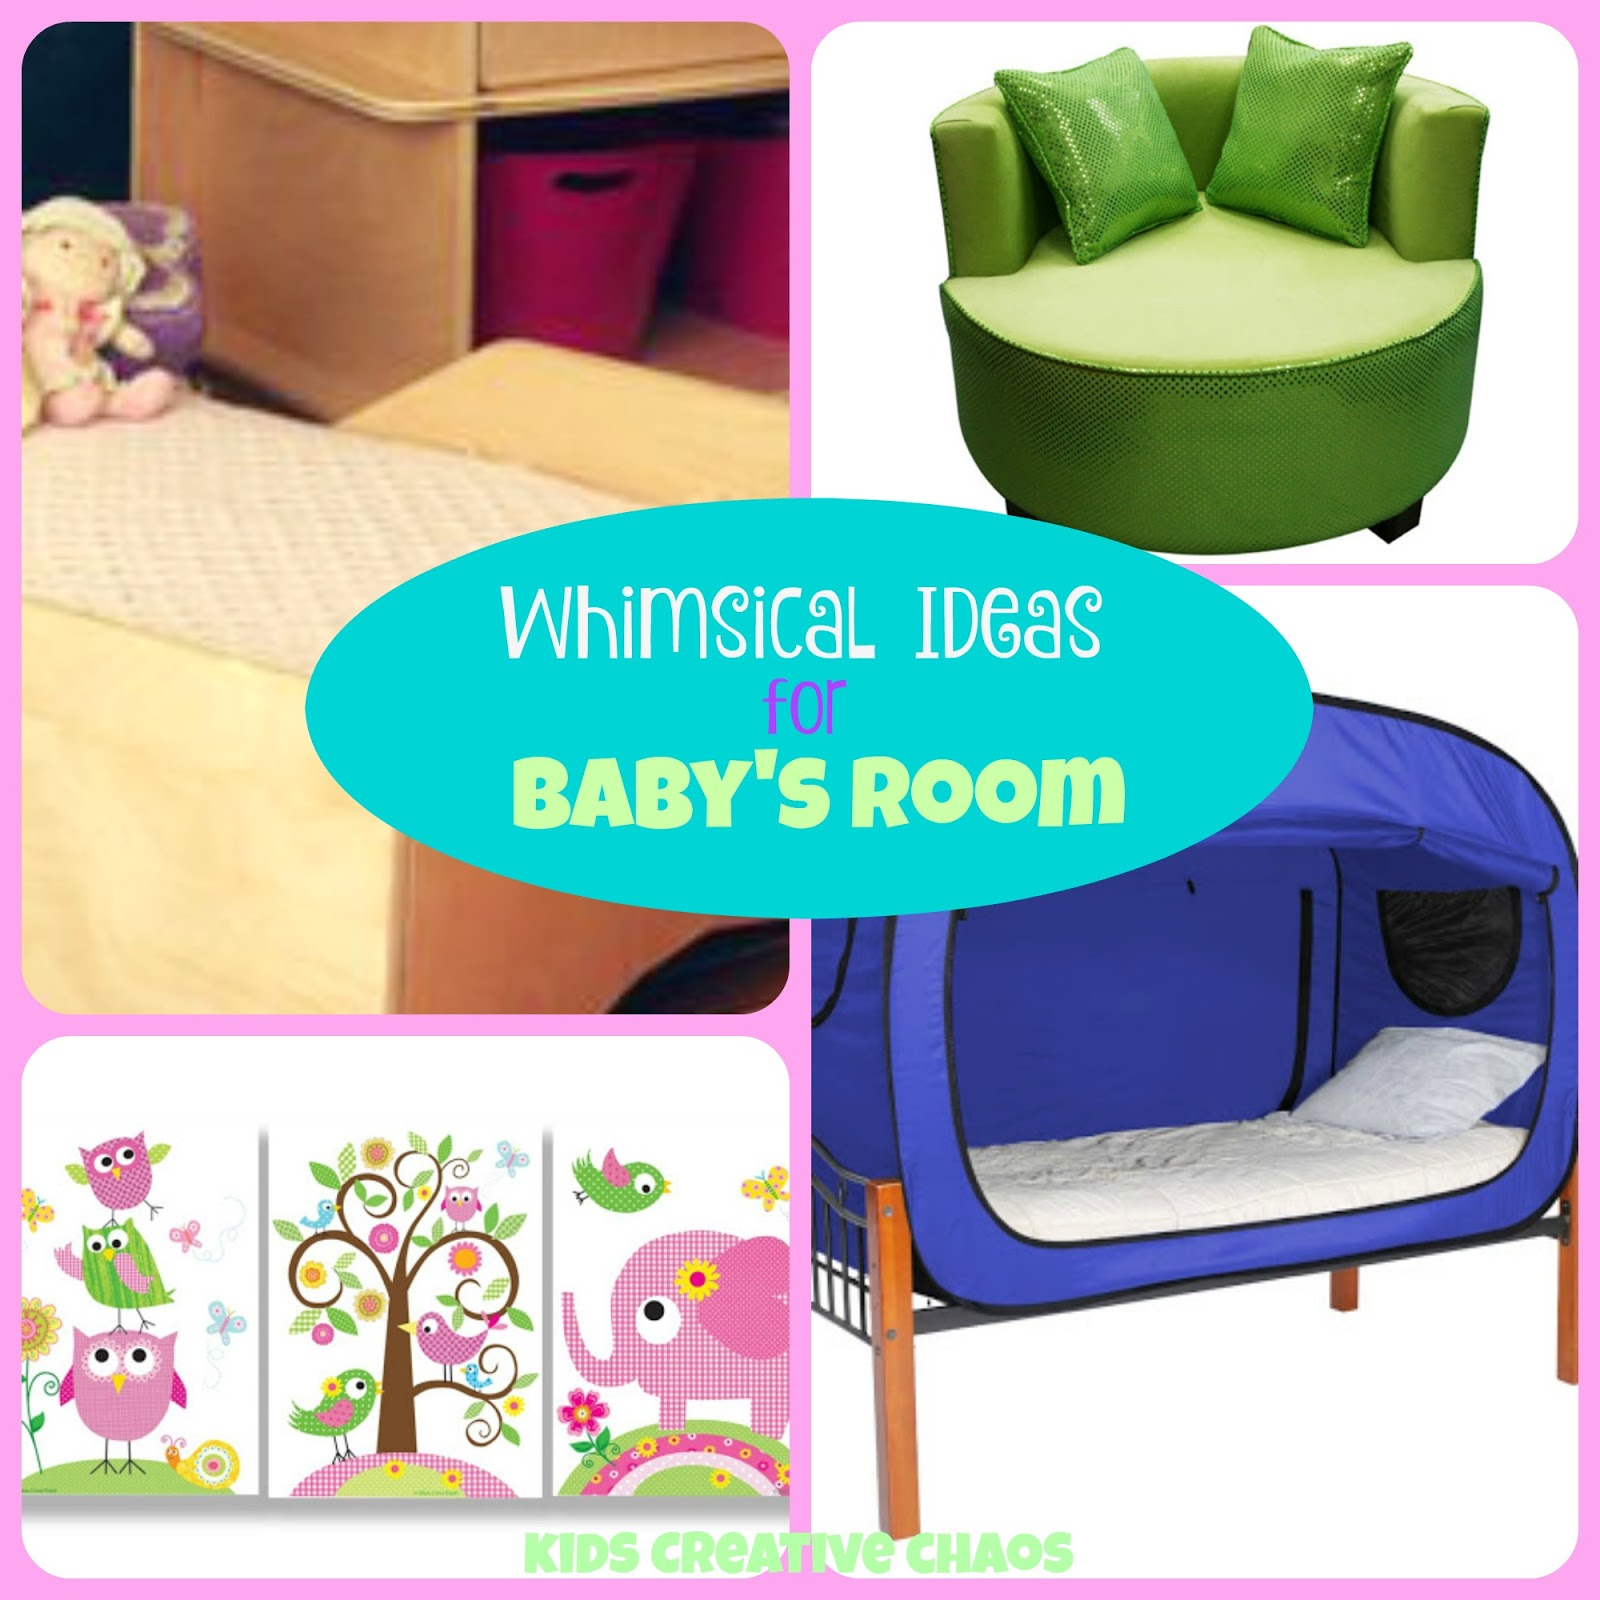 Whimsical Kids Decor For The Nursery Baby Or Toddler Room